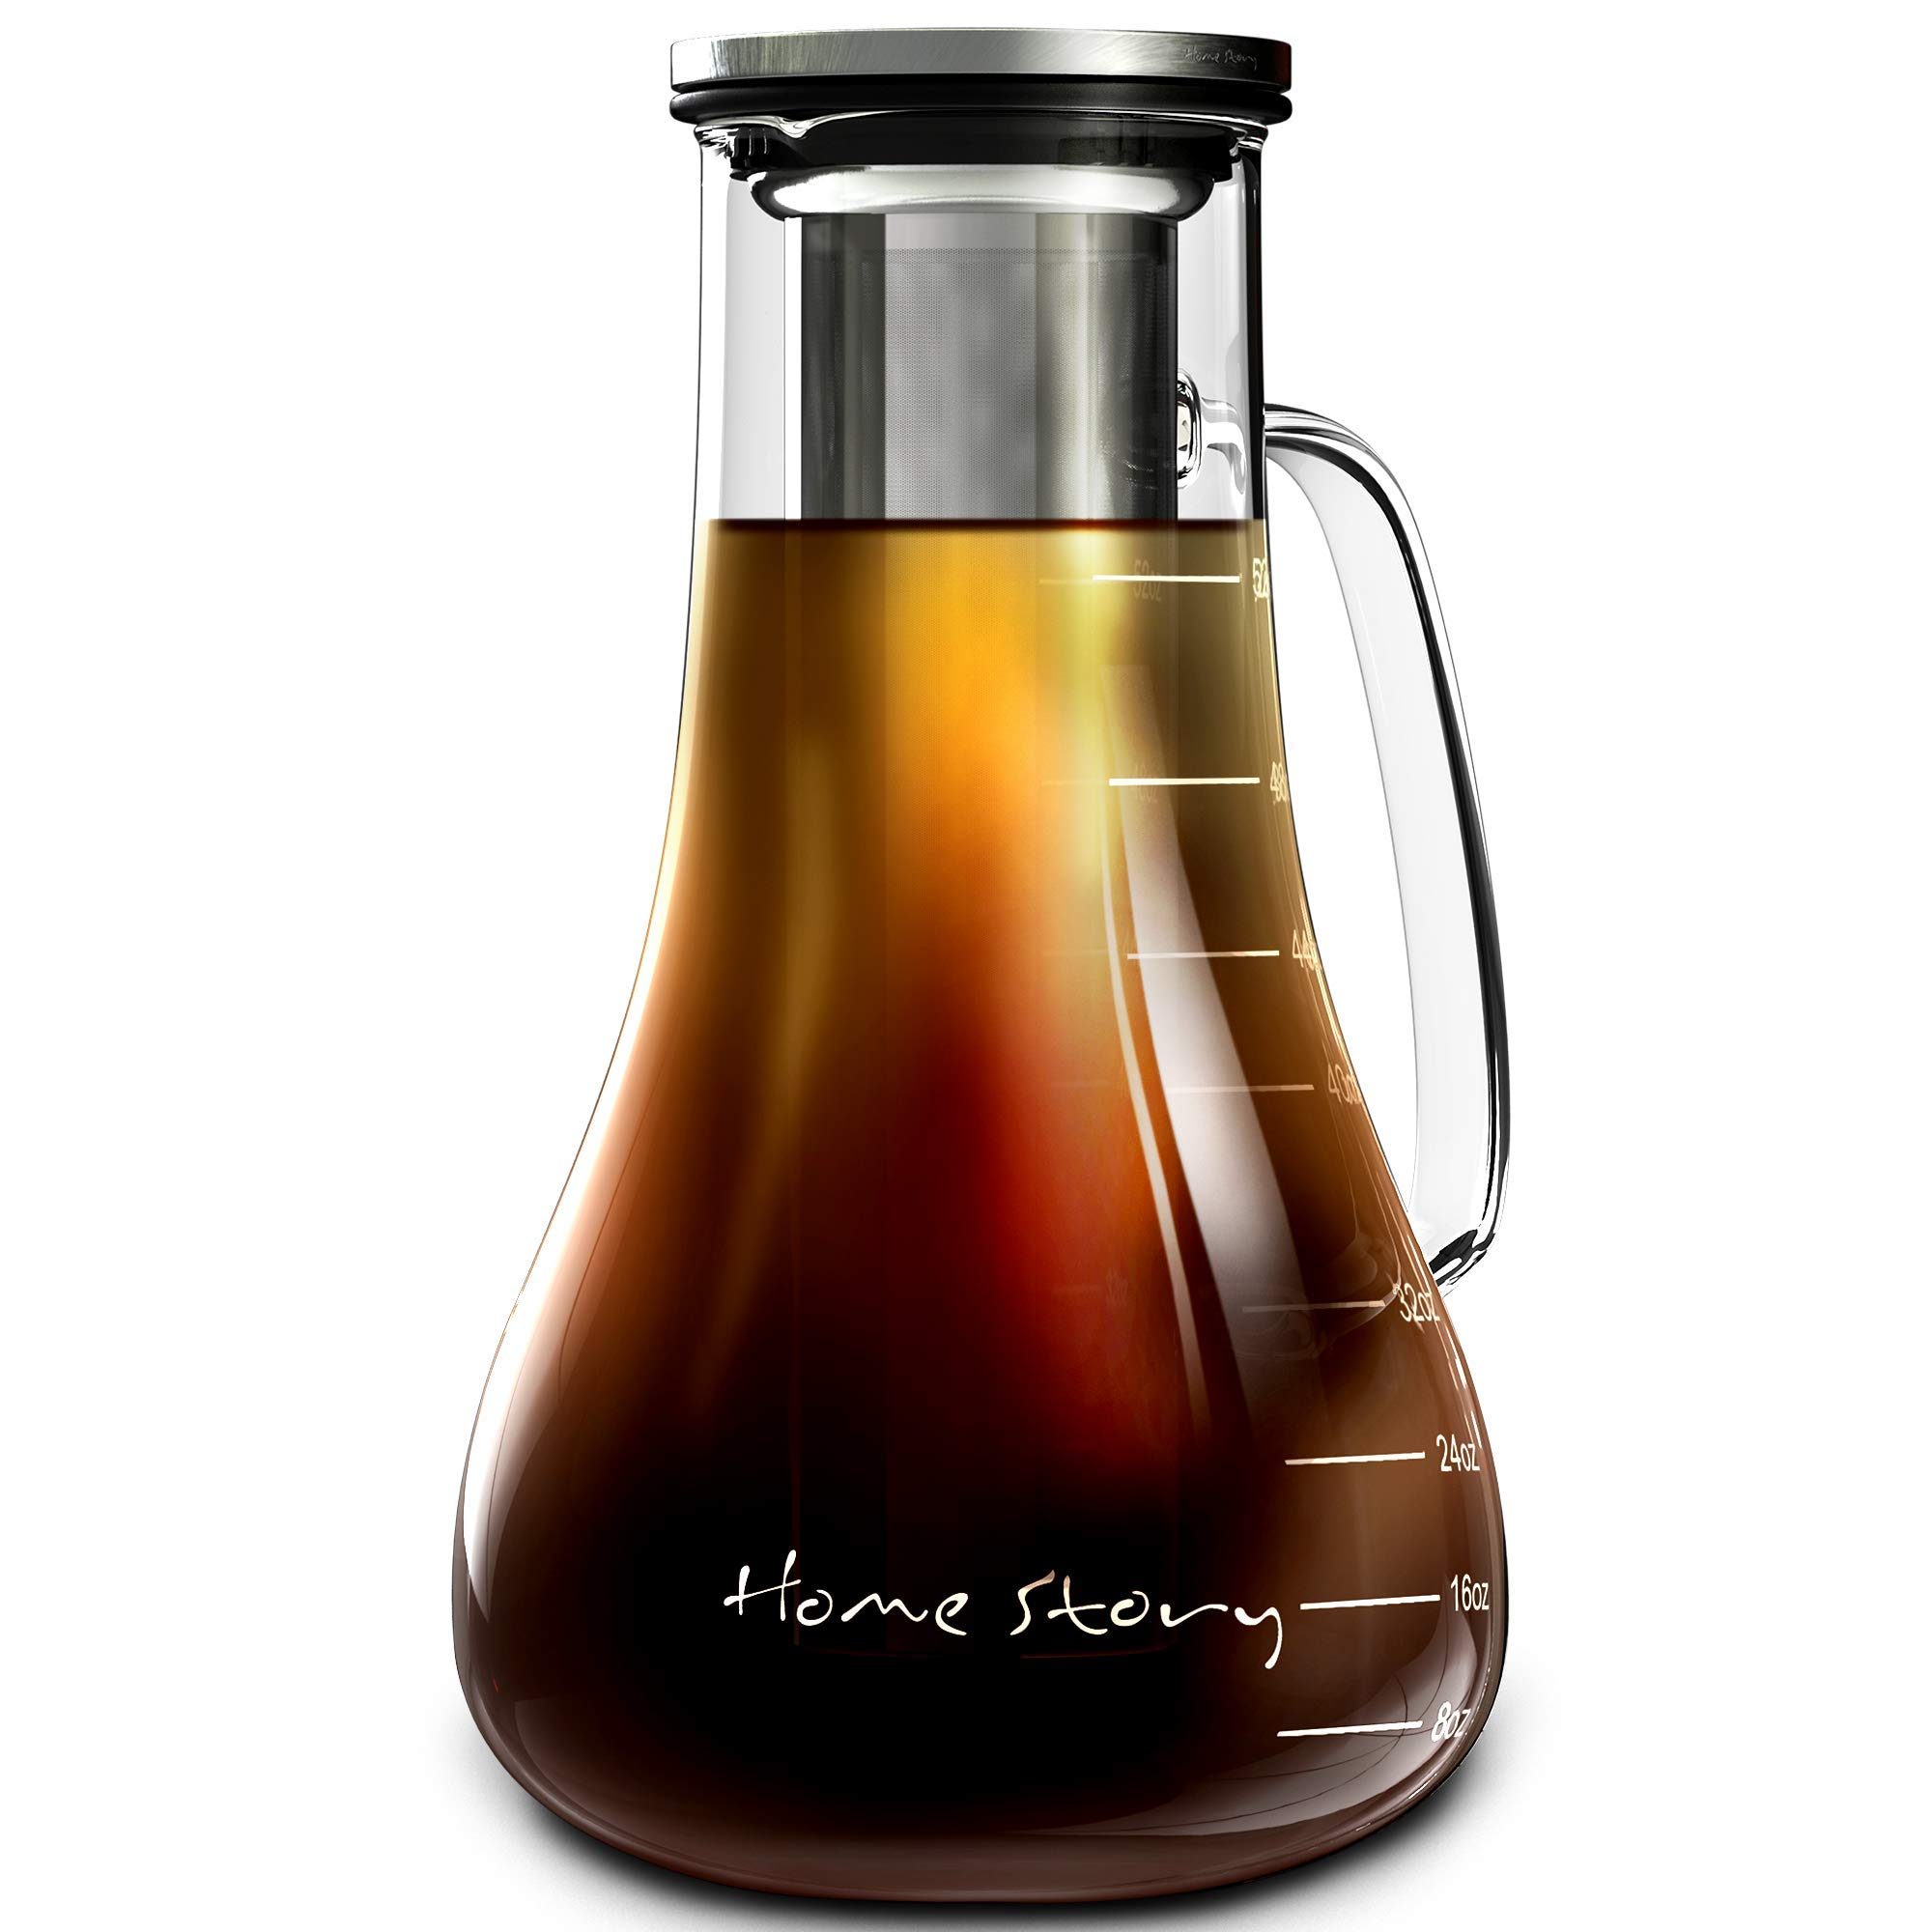 Cold Brew Coffee Maker | Glass Cold Brew Maker Pitcher 52 oz | Iced Coffee Maker Brewer Kit | Works Even as Large Cold Press Coffee Maker Pot or Hot Iced Tea Maker Infuser Carafe | Coffee Lovers Gift by Cold Brew Coffee Maker Home Story